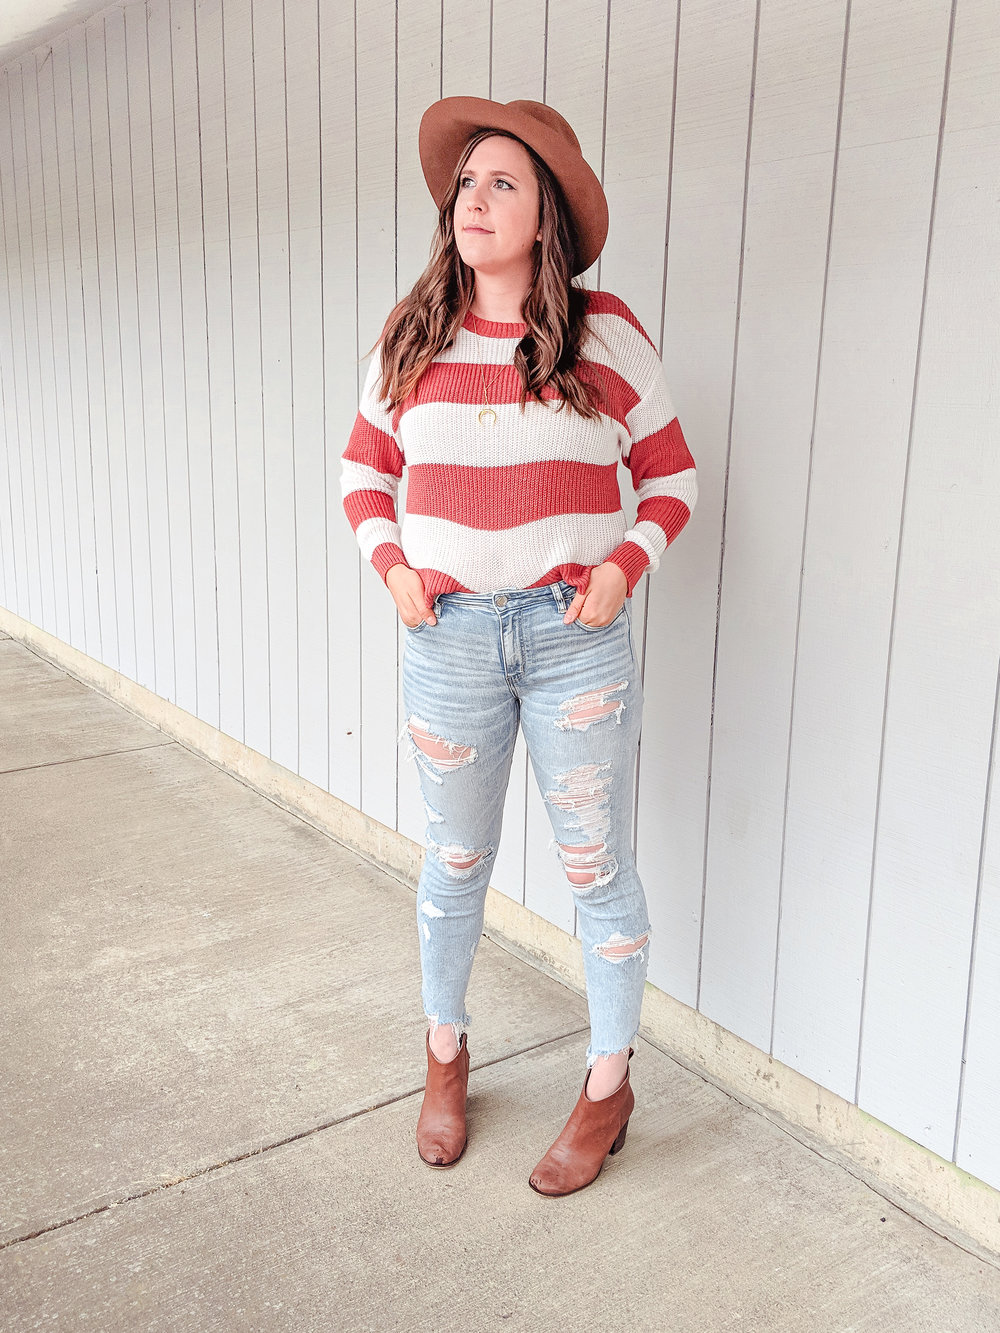 Striped Sweater Fall Fashion StylebyJulianne